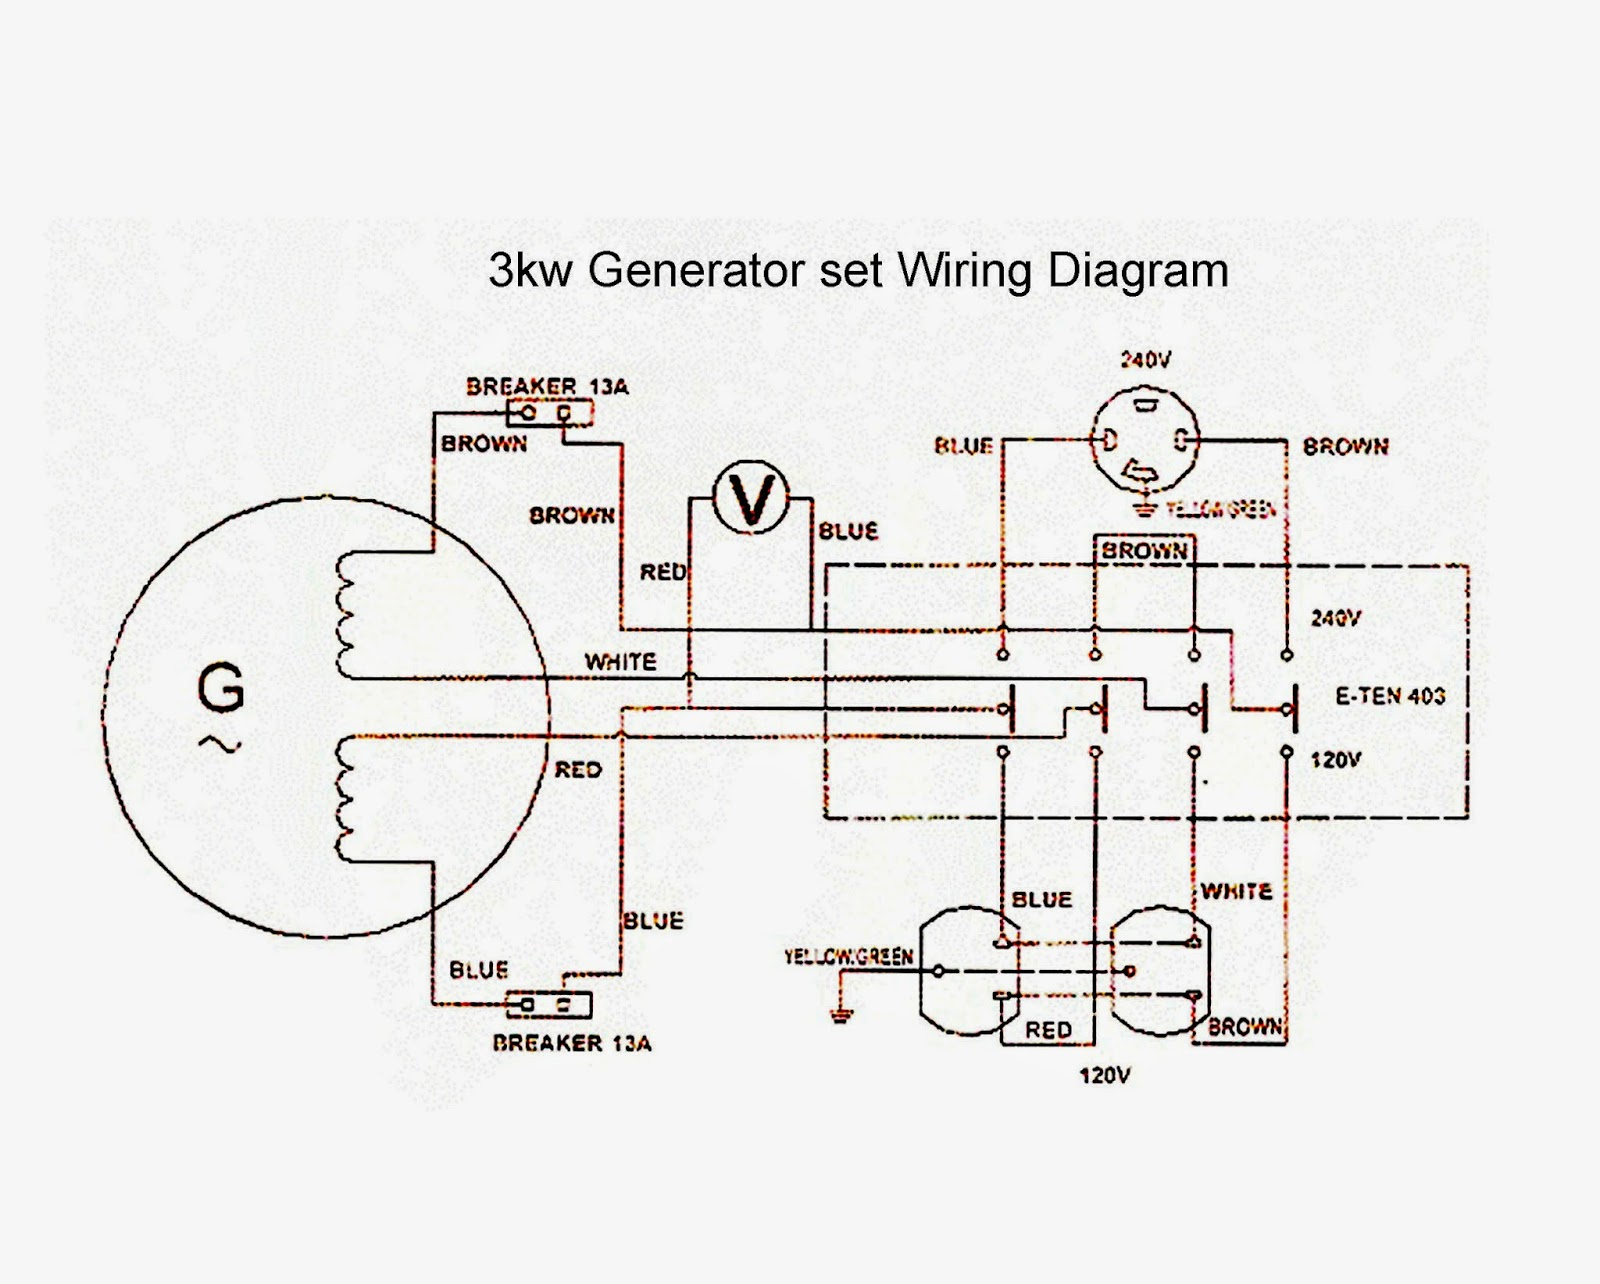 Electricity Wiring Diagrams Suzuki Mikuni Carburetor Diagram July 2014 Electrical Winding